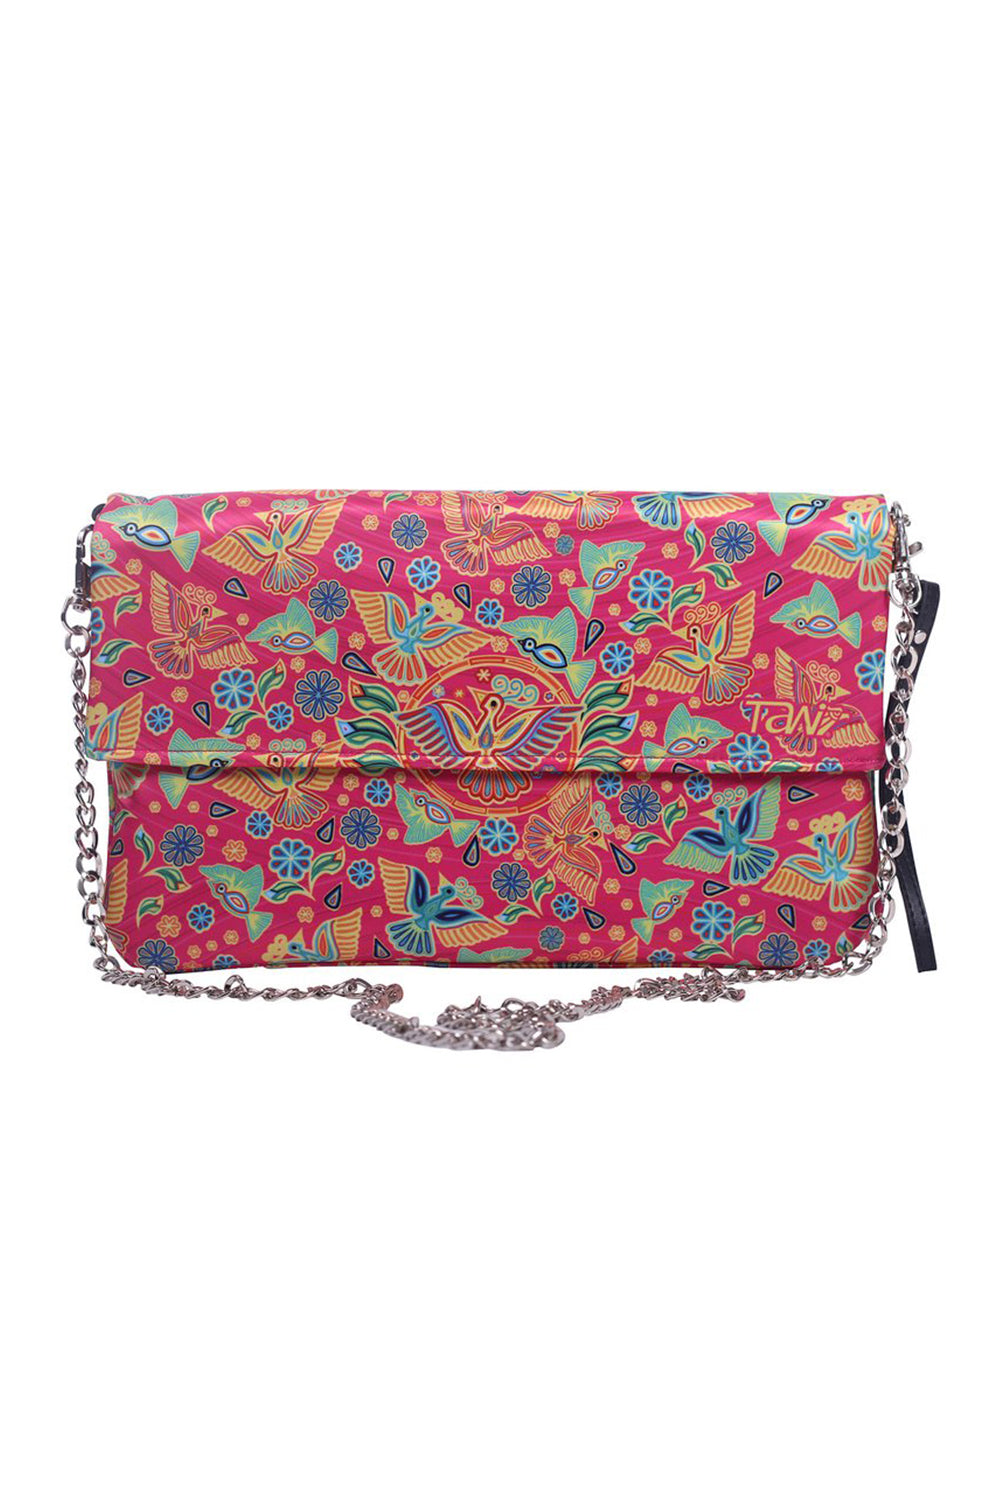 BAG TULUM TEXTIL HUICHOL (Pink) - to Women - ¡Ay Güey! USA